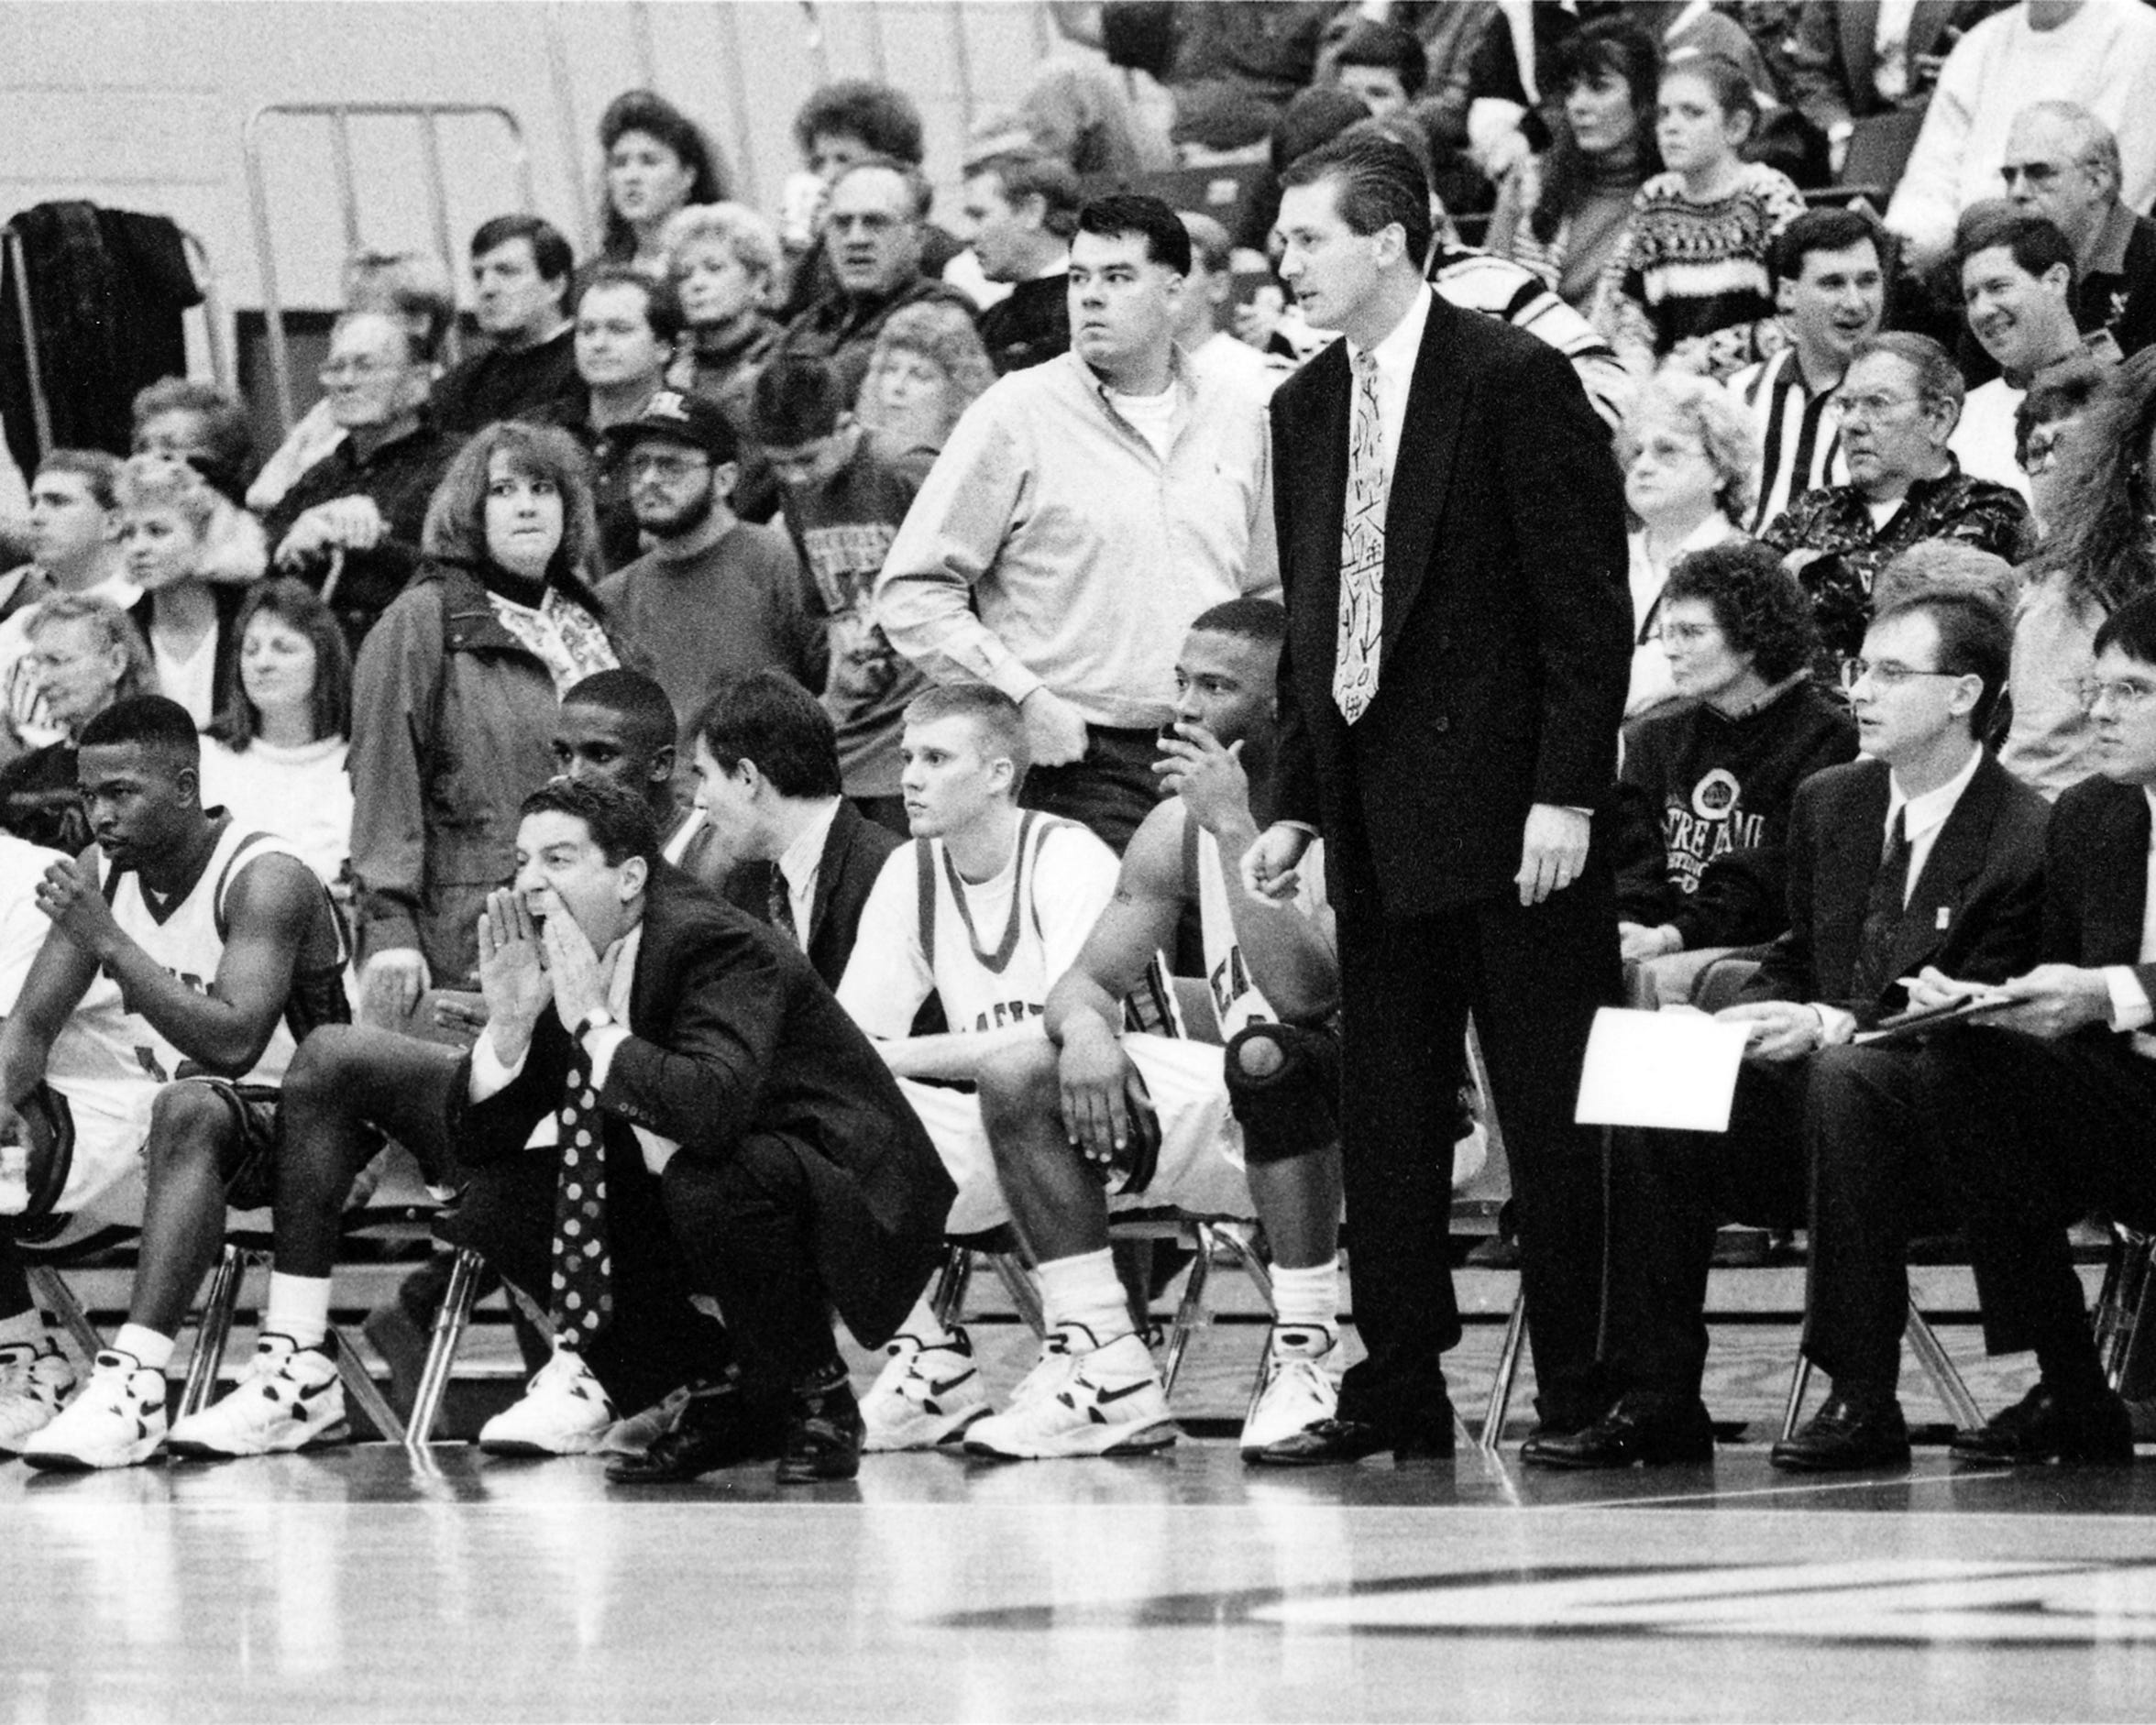 Bruce Pearl (squatting) and Rick Herdes coaching USI in the 1990s.